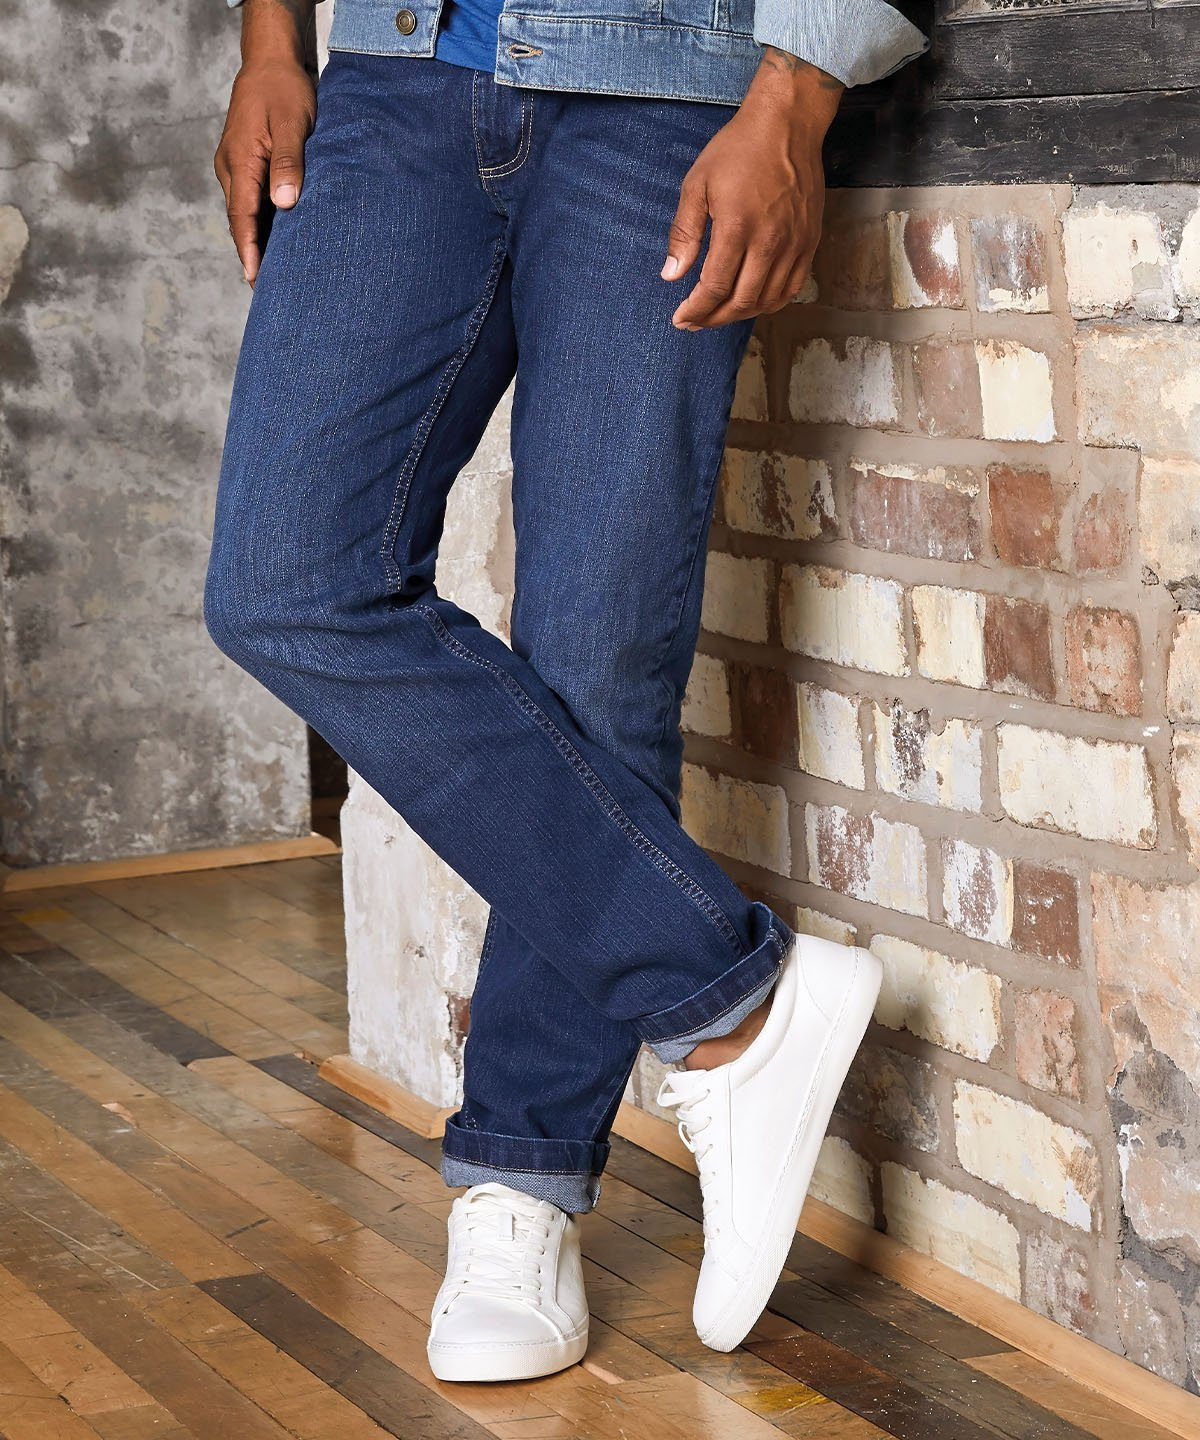 Men's Straight Jeans Primate Fashion